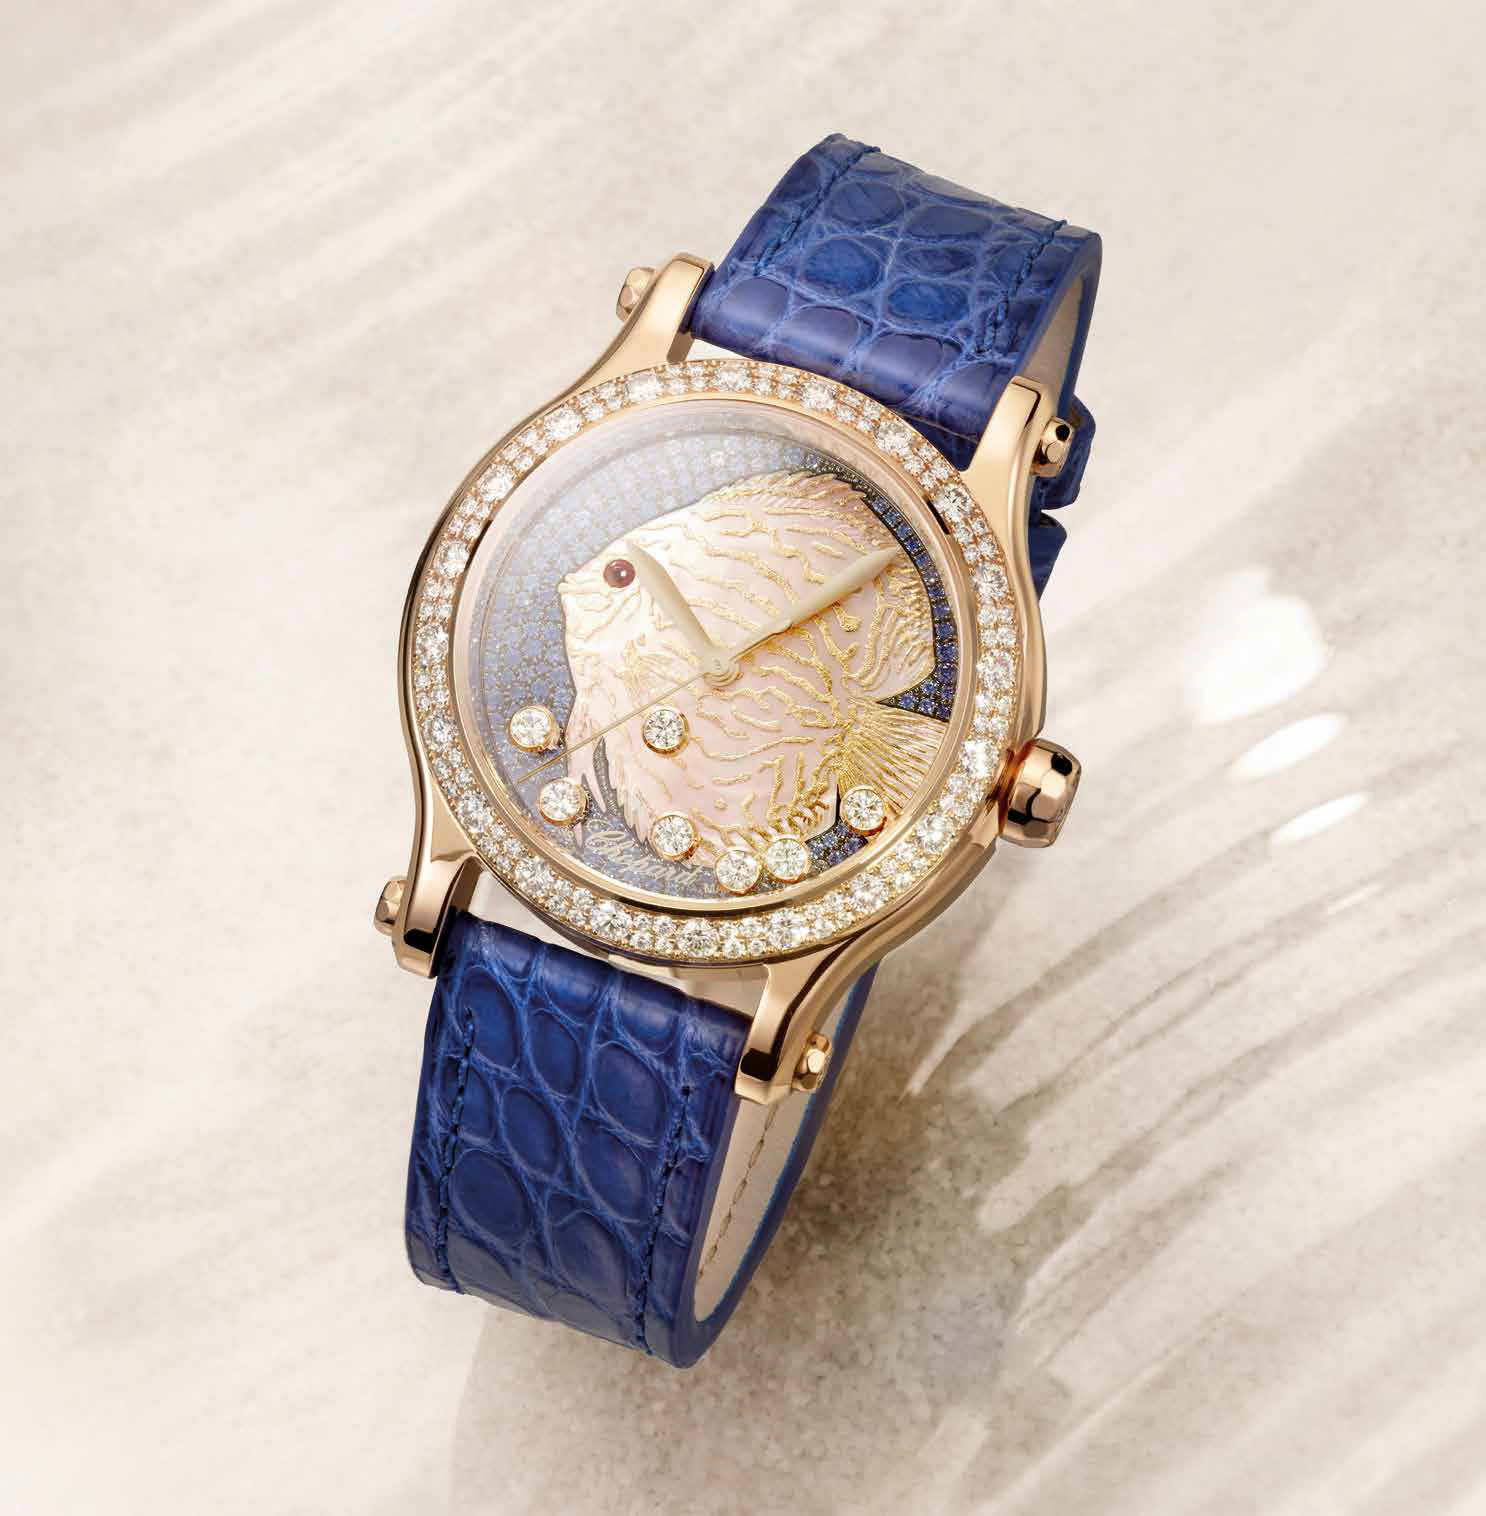 #PrestigeAllIWant: Luxurious Watches with Artsy Animal Dial